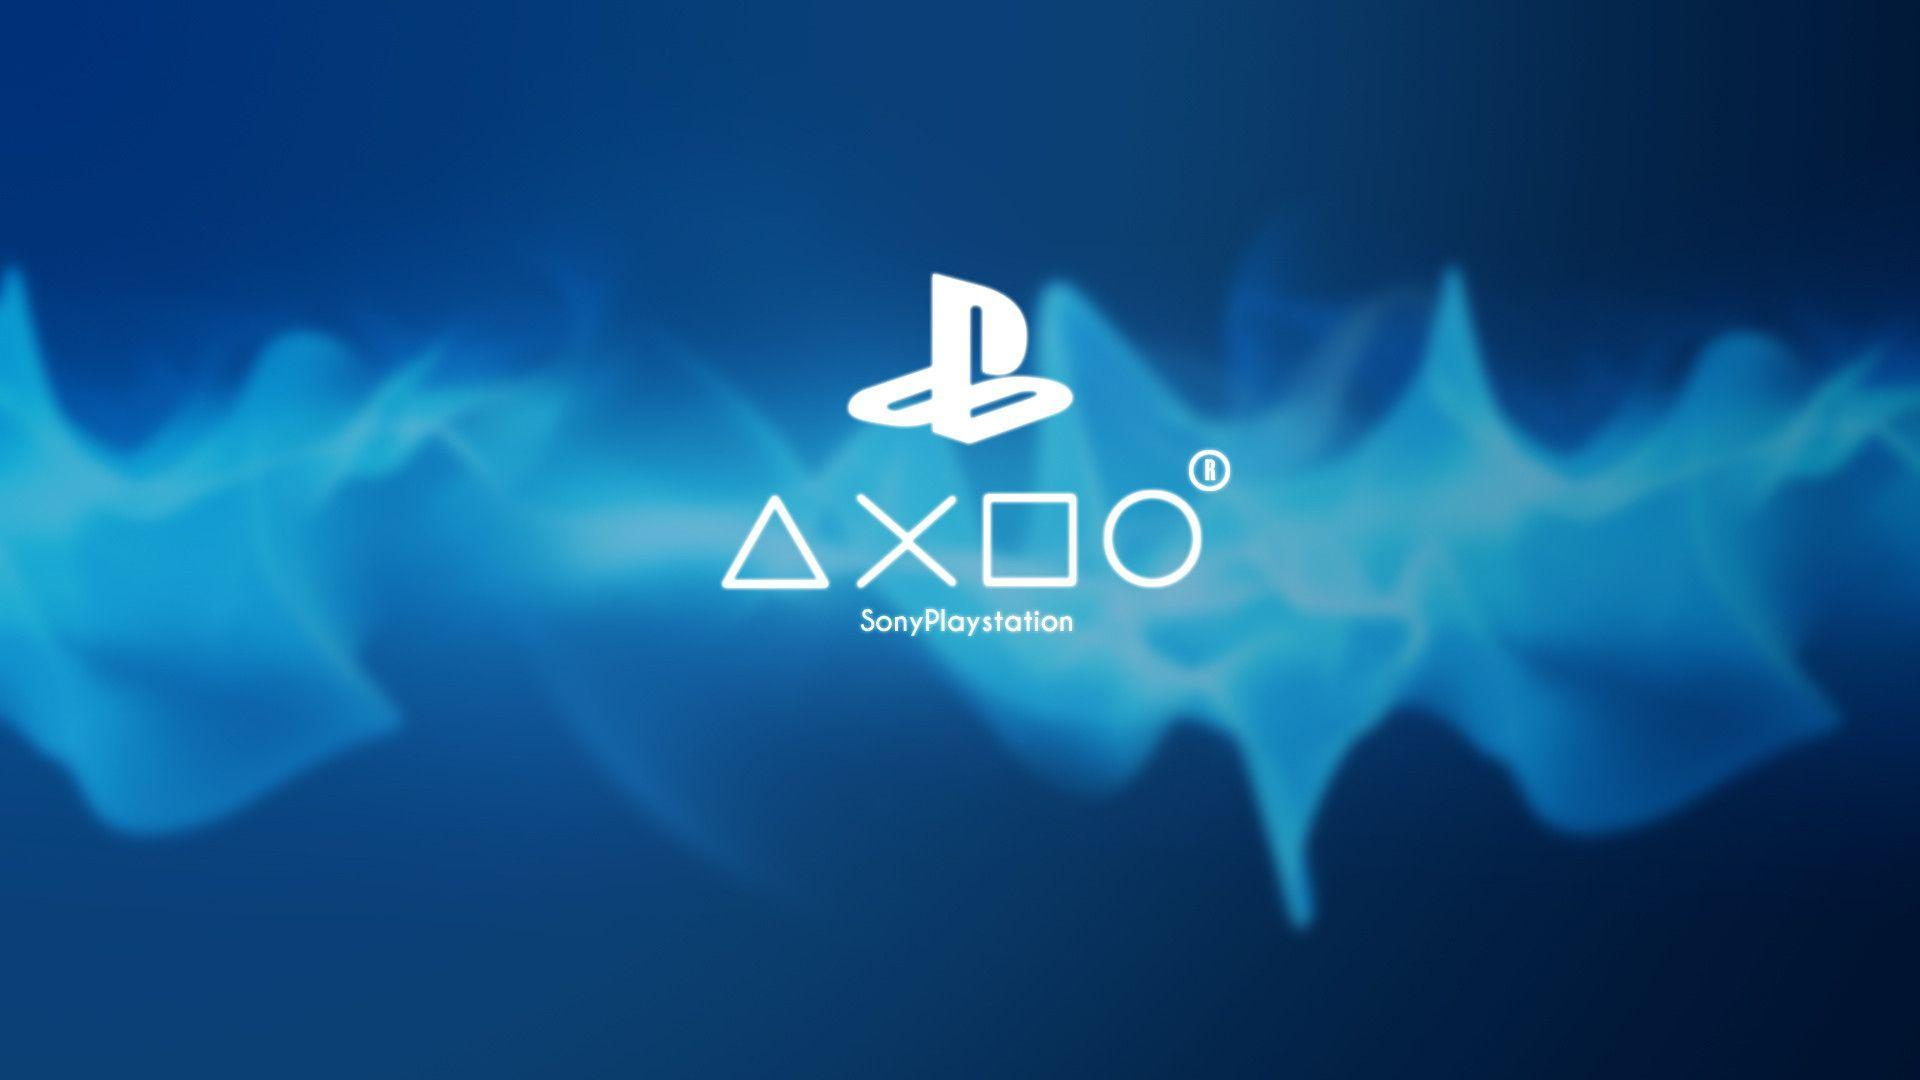 Wallpapers For > Sony Playstation Wallpapers